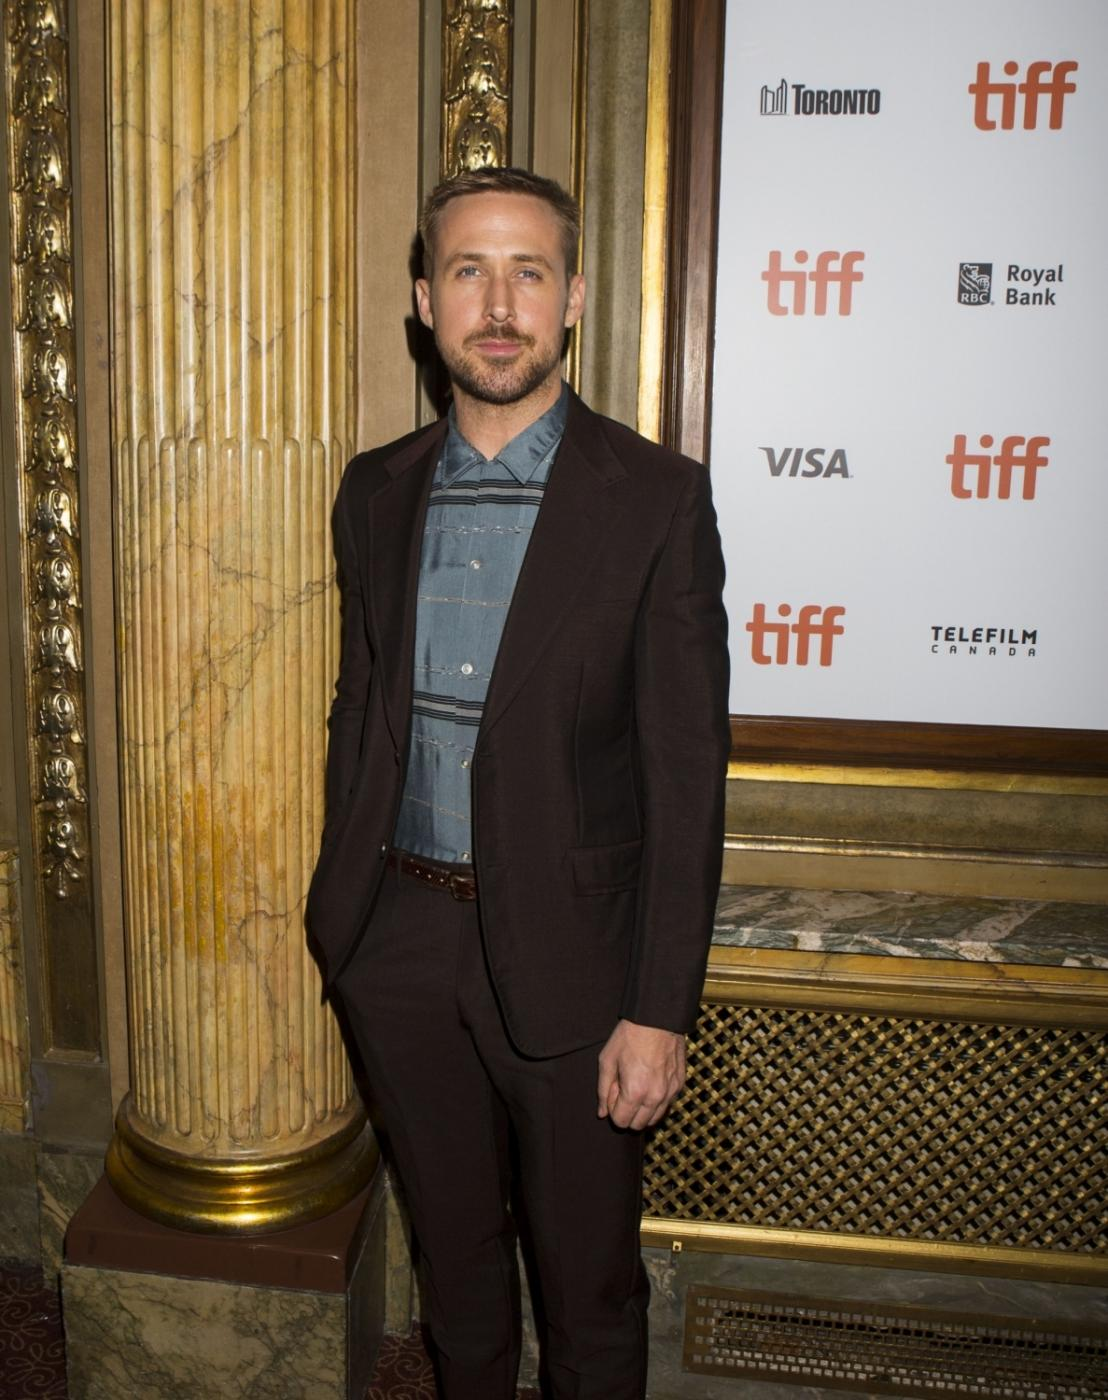 """TORONTO, Sept. 10, 2018 (Xinhua) -- Actor Ryan Gosling poses for photos before the Canadian premiere of the film """"First Man"""" during the 2018 Toronto International Film Festival in Toronto, Canada, on Sept. 10, 2018. (Xinhua/Zou Zheng/IANS) by ."""